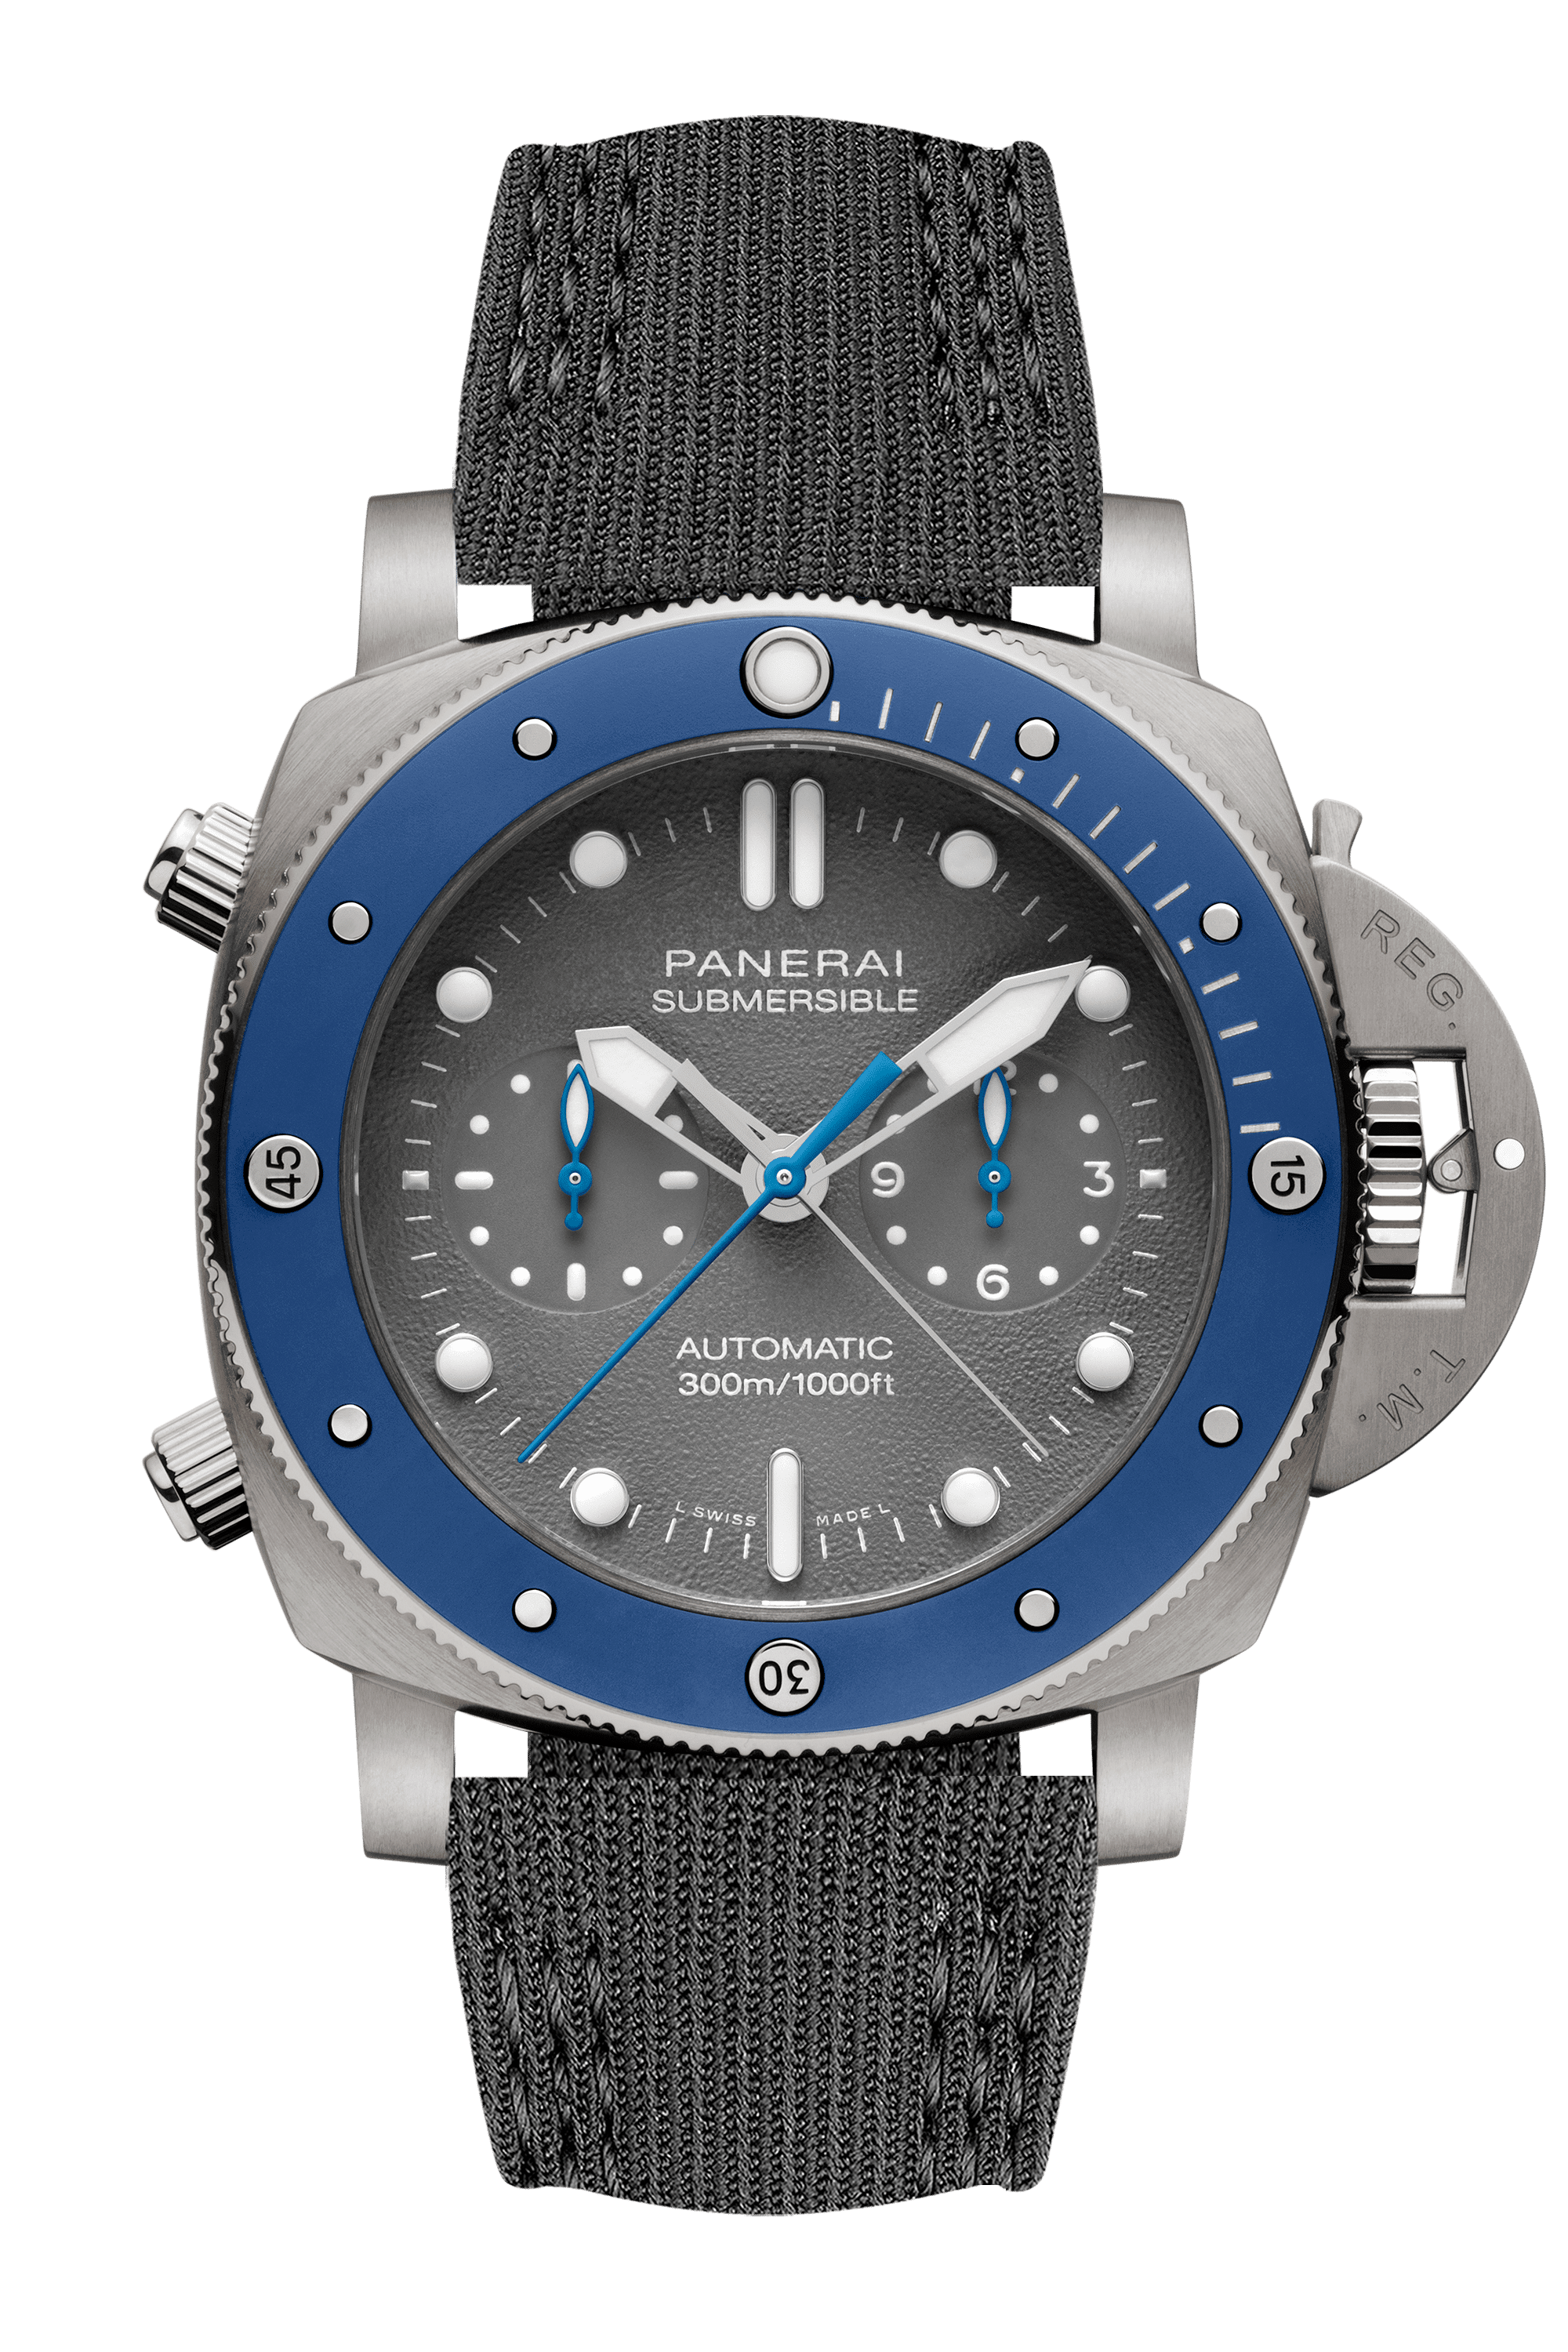 PNPAM00982 - Submersible Chrono Guillaume Nery Edition - 47mm